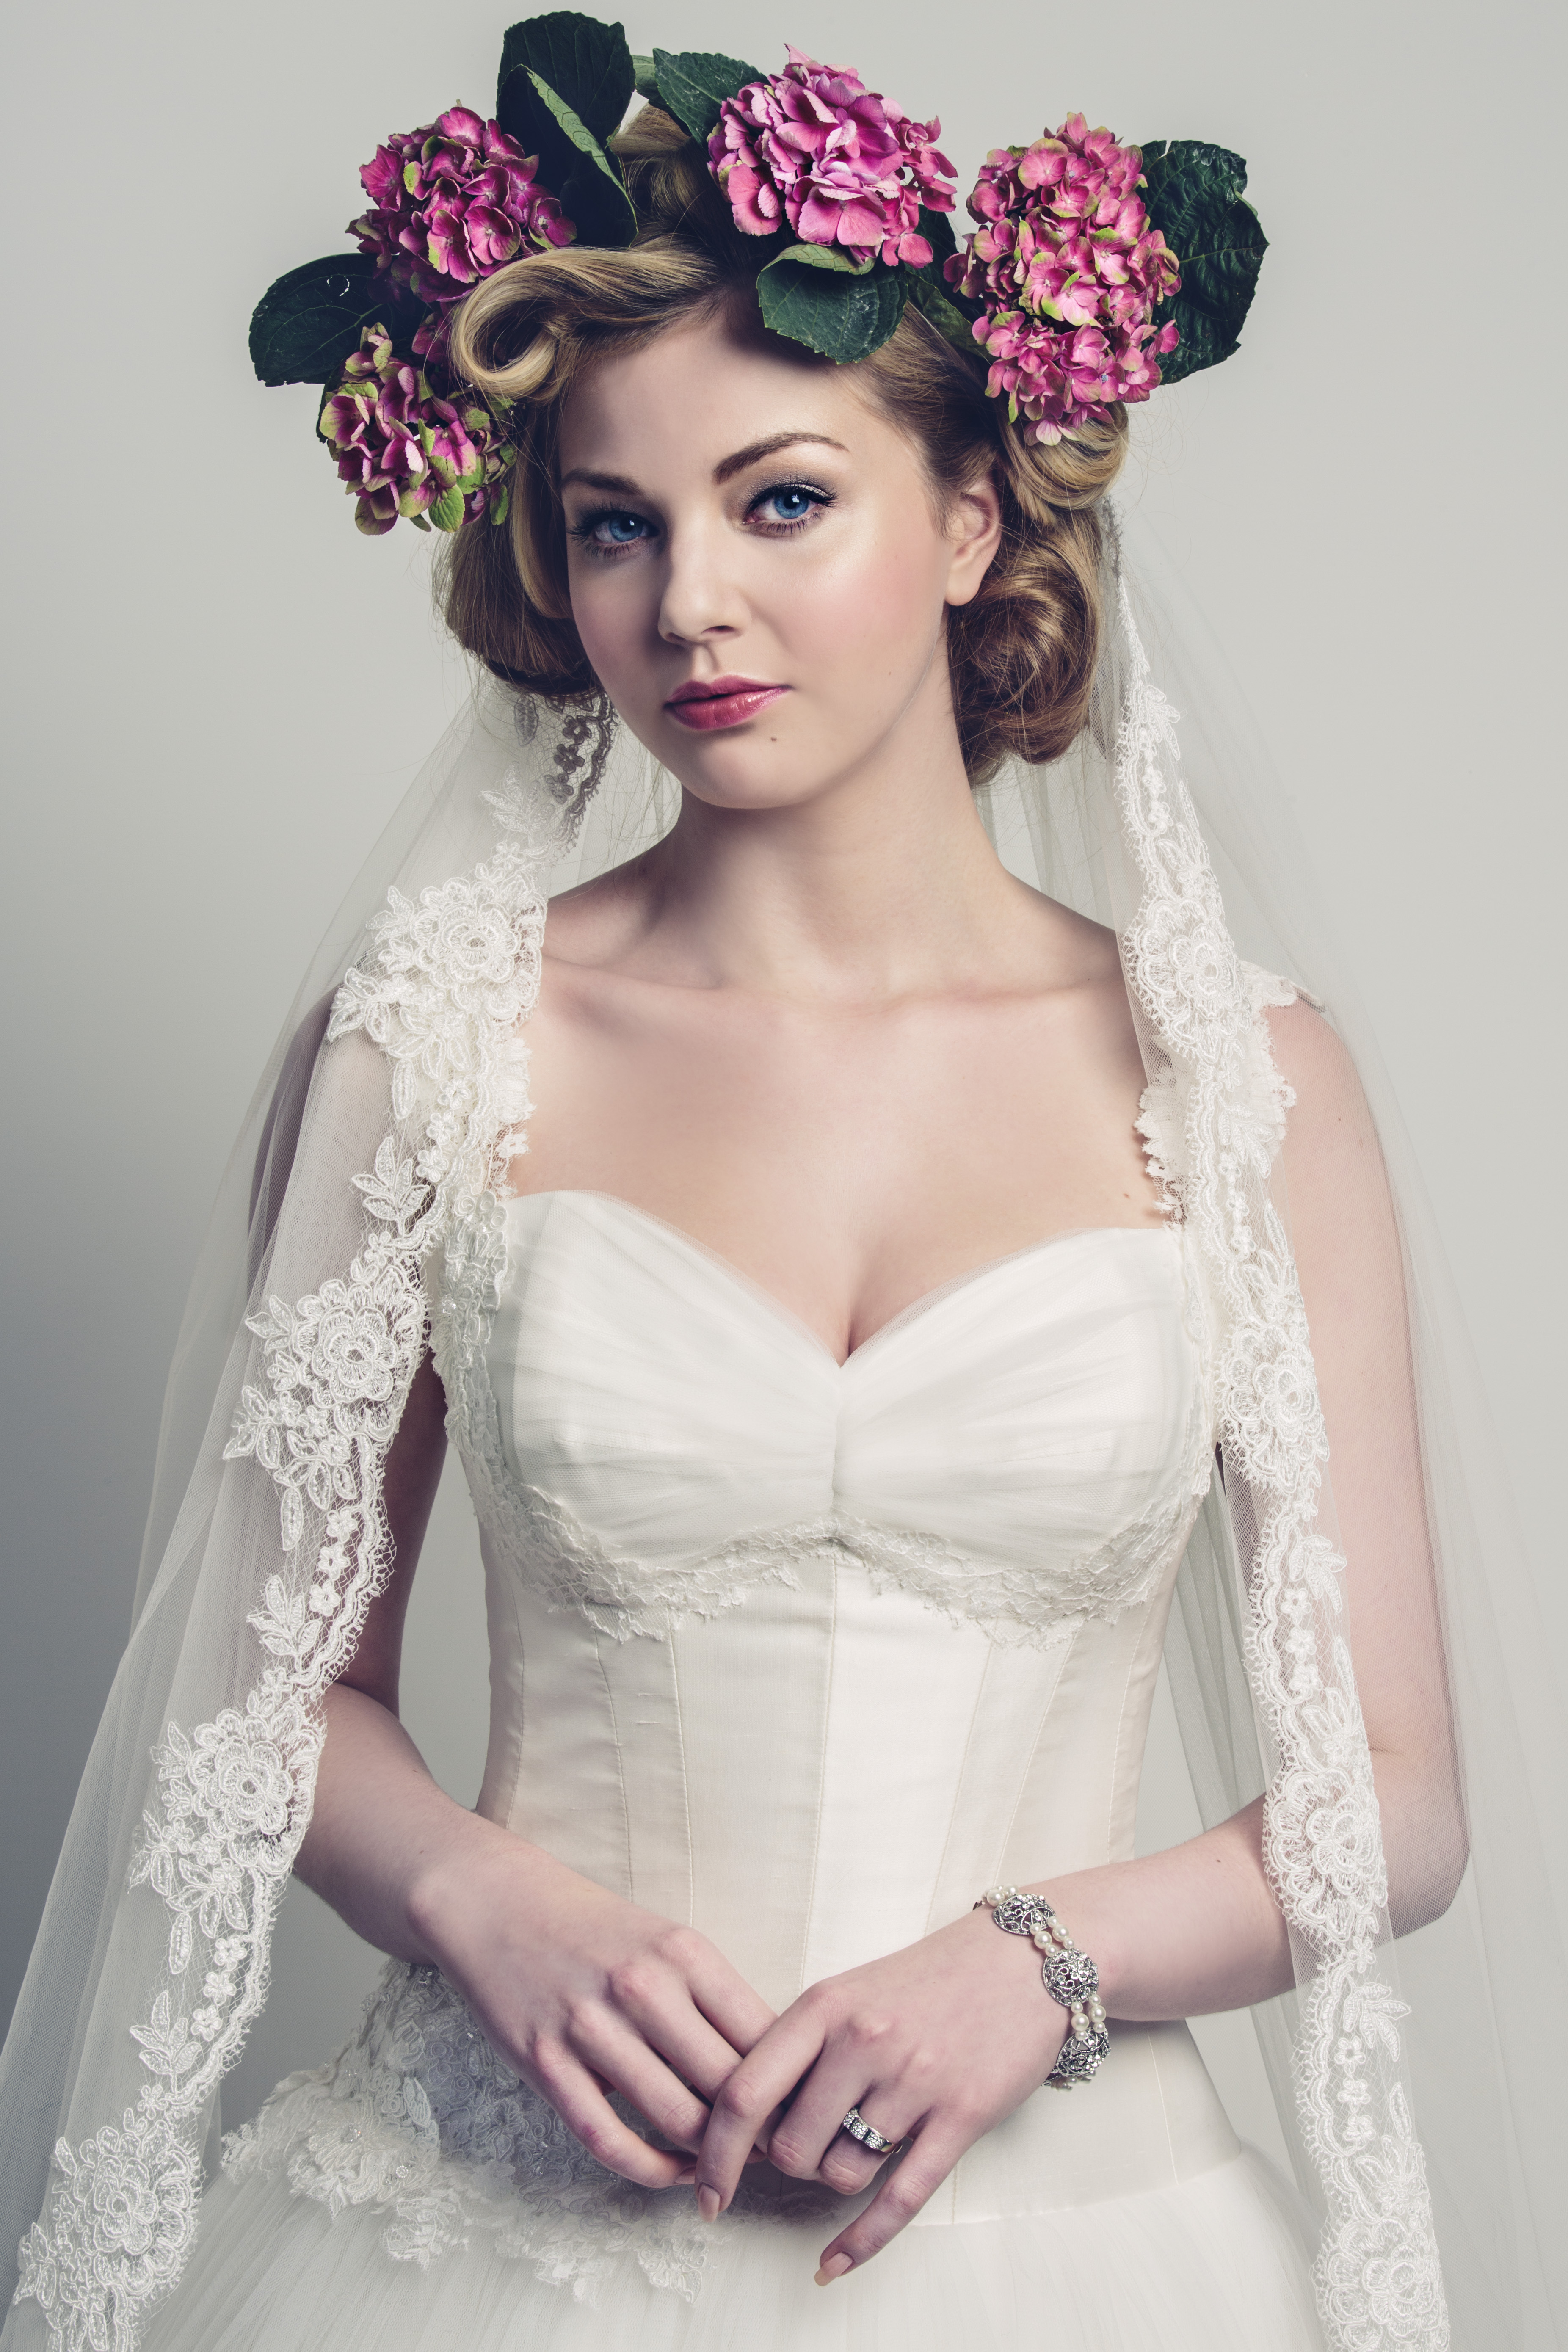 make up by jo | north east makeup artist | weddings | fashion